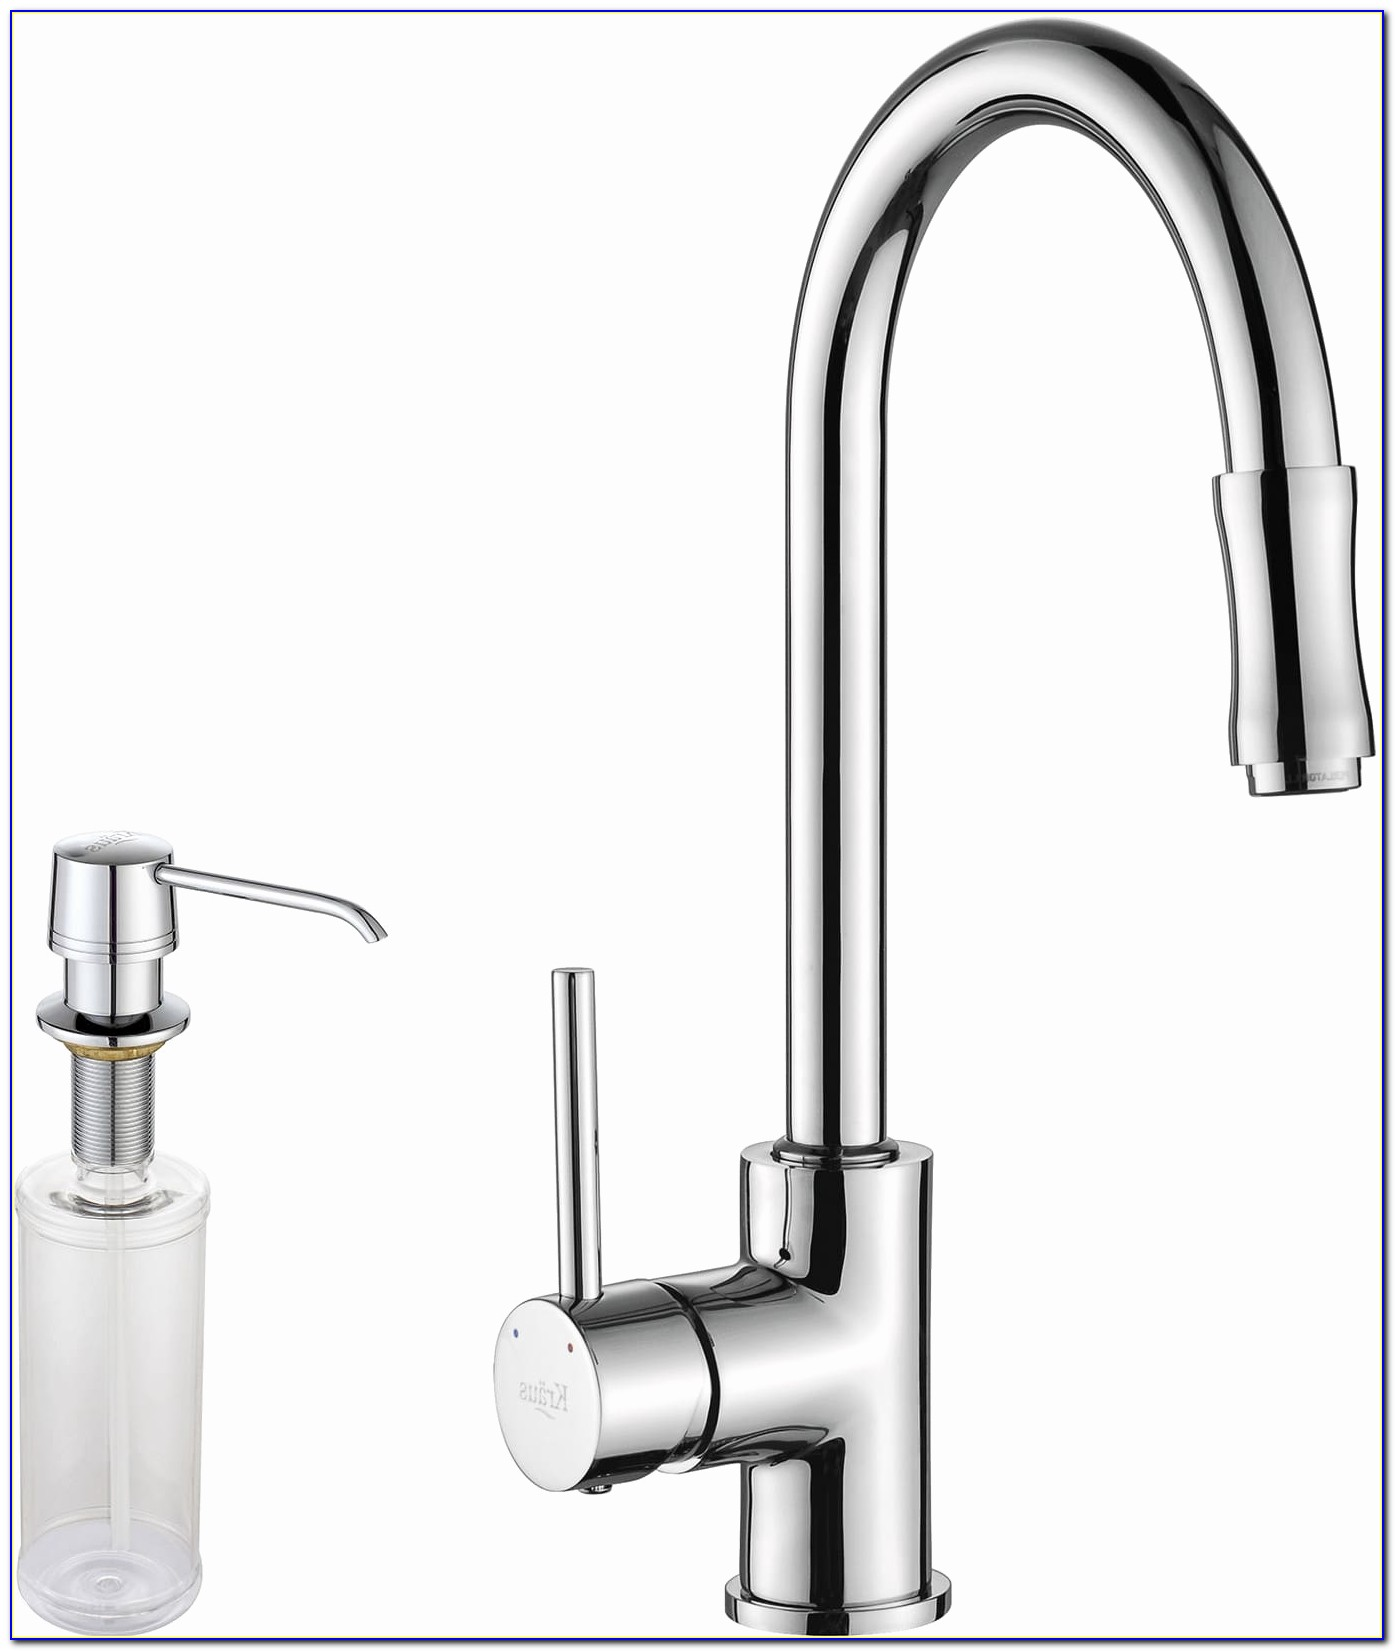 Single Handle Pull Down Kitchen Faucet With Soap Dispenser Bronze Inspirational Kraus Kpf1622ksd30ch Single Lever Cast Spout Kitchen Faucet With 2 2